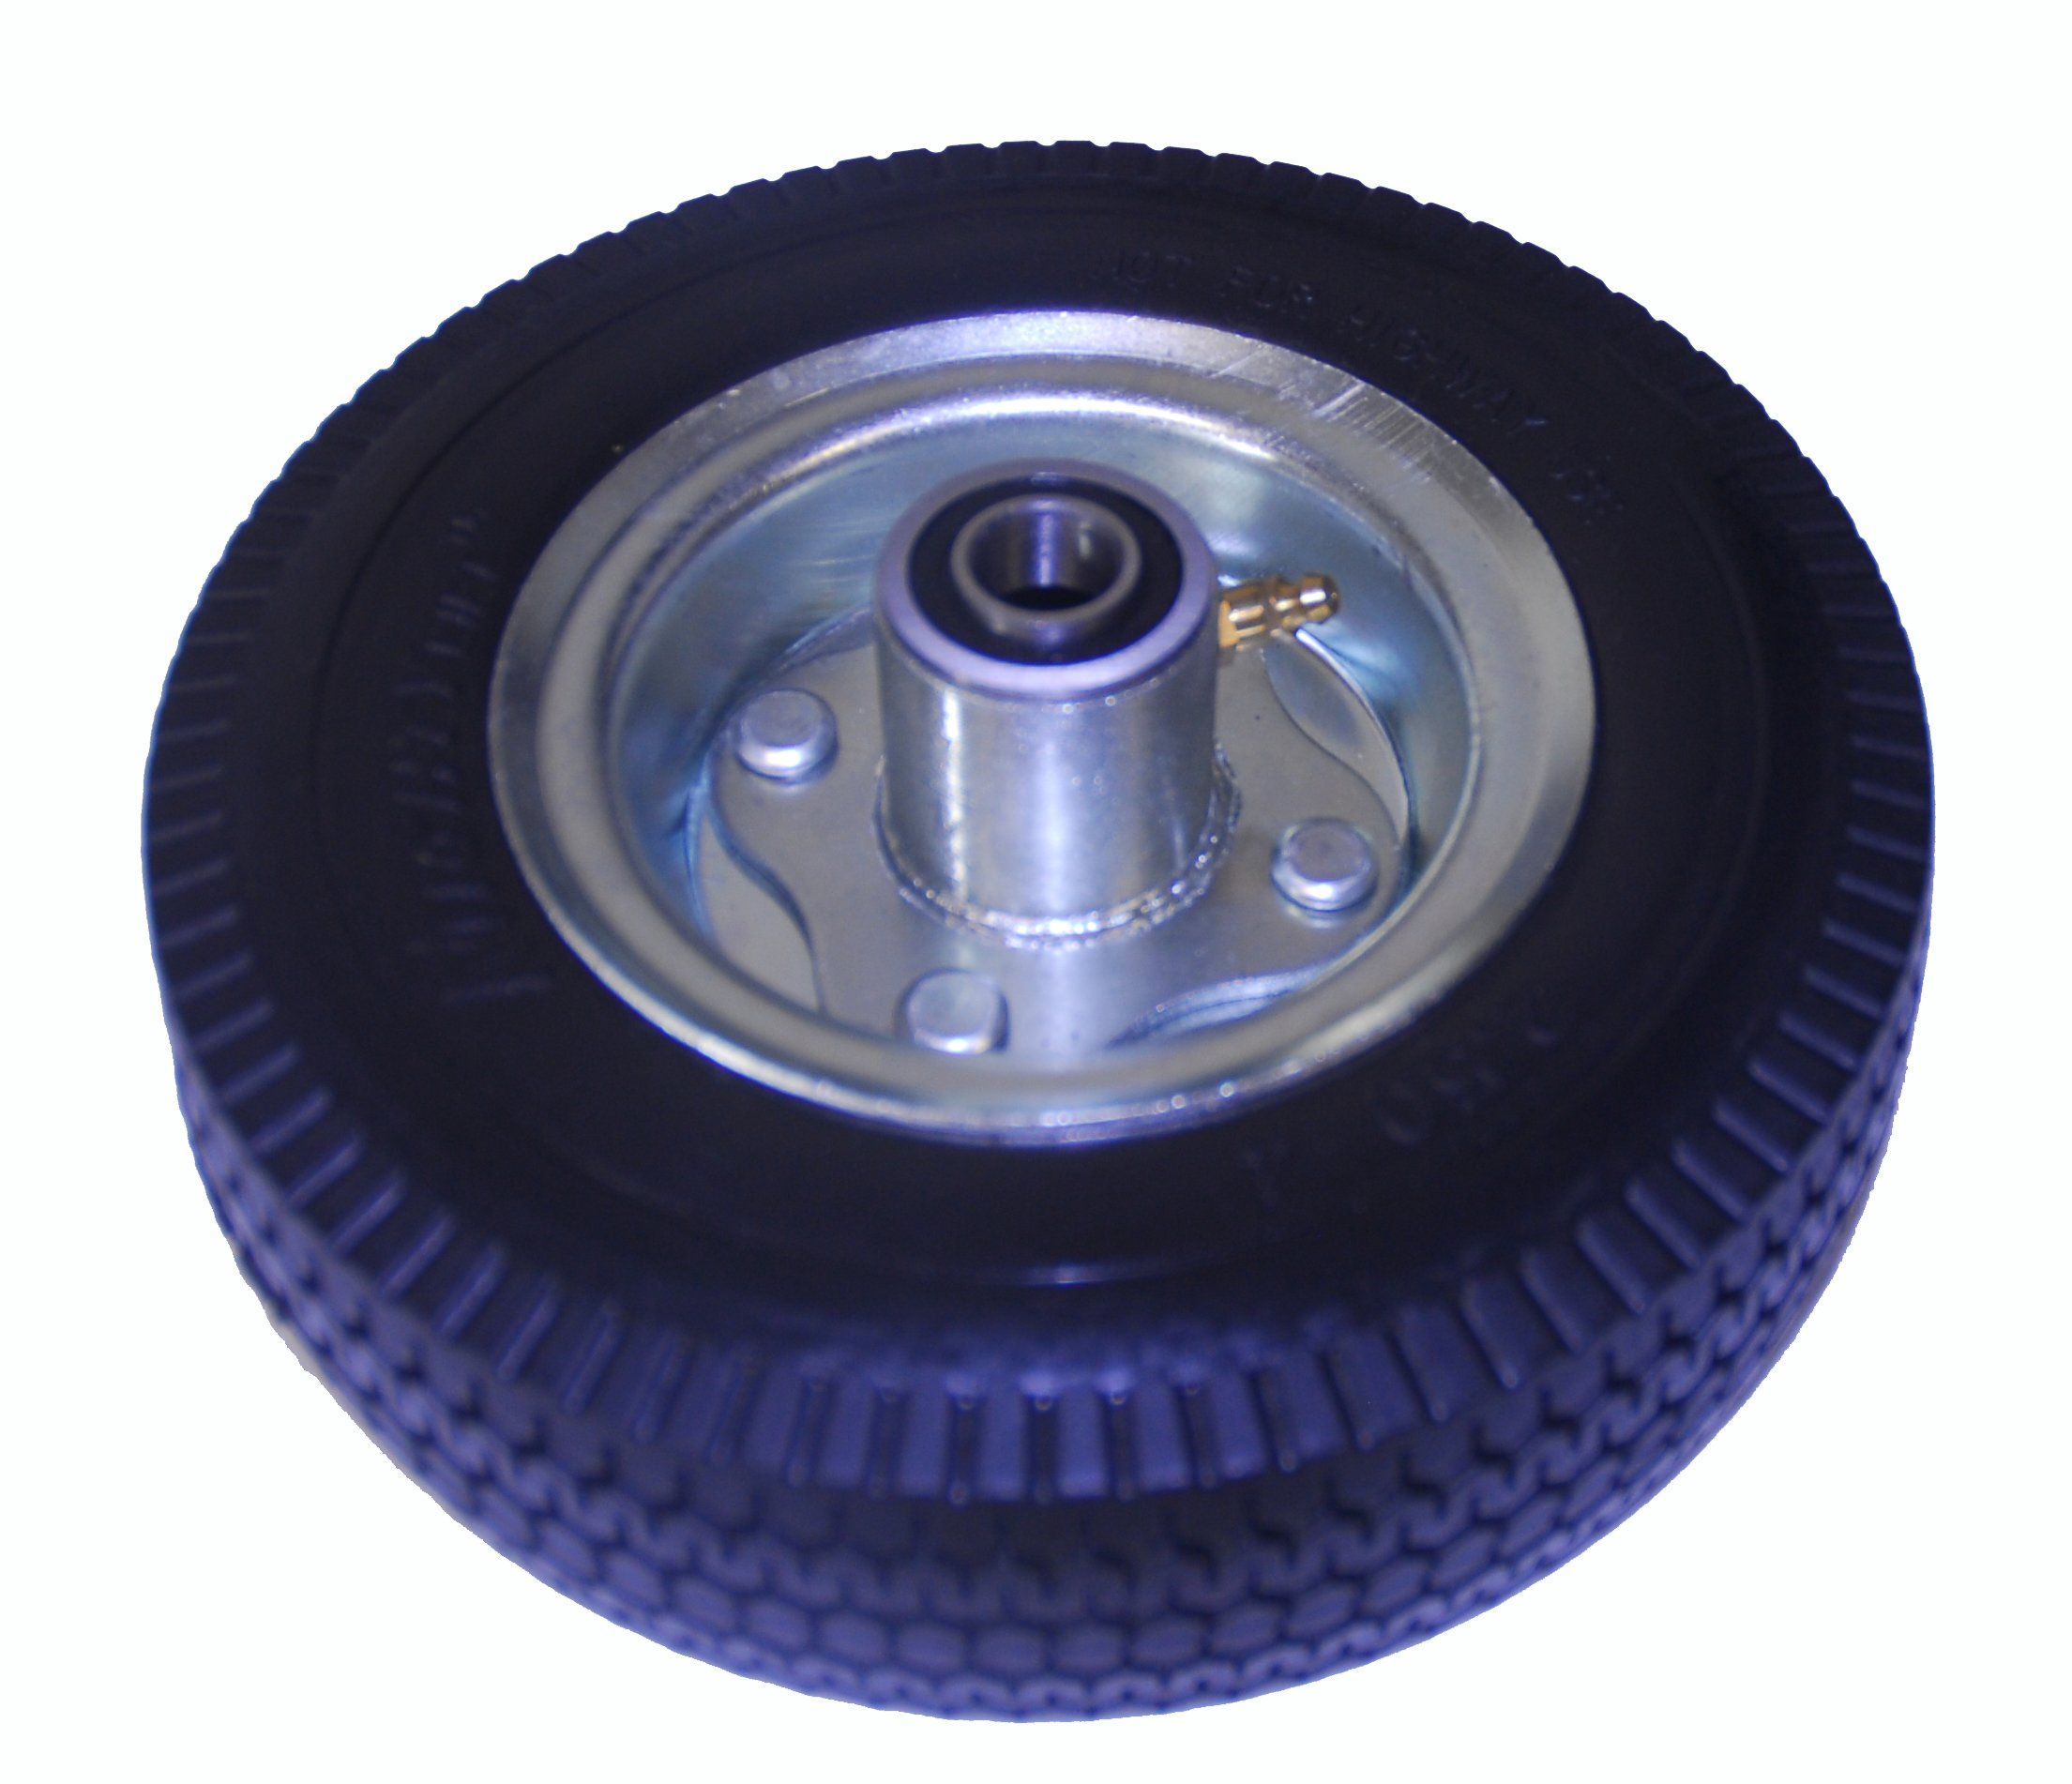 "Mighty Lift 8"" x 2.5"" Hand truck wheel, Flat Free, Tubeless, 2.80/2.50-4 Poly Tire, 2-1/4'' Offset Hub, 5/8'' Precision Bearing, 350 lbs cap"